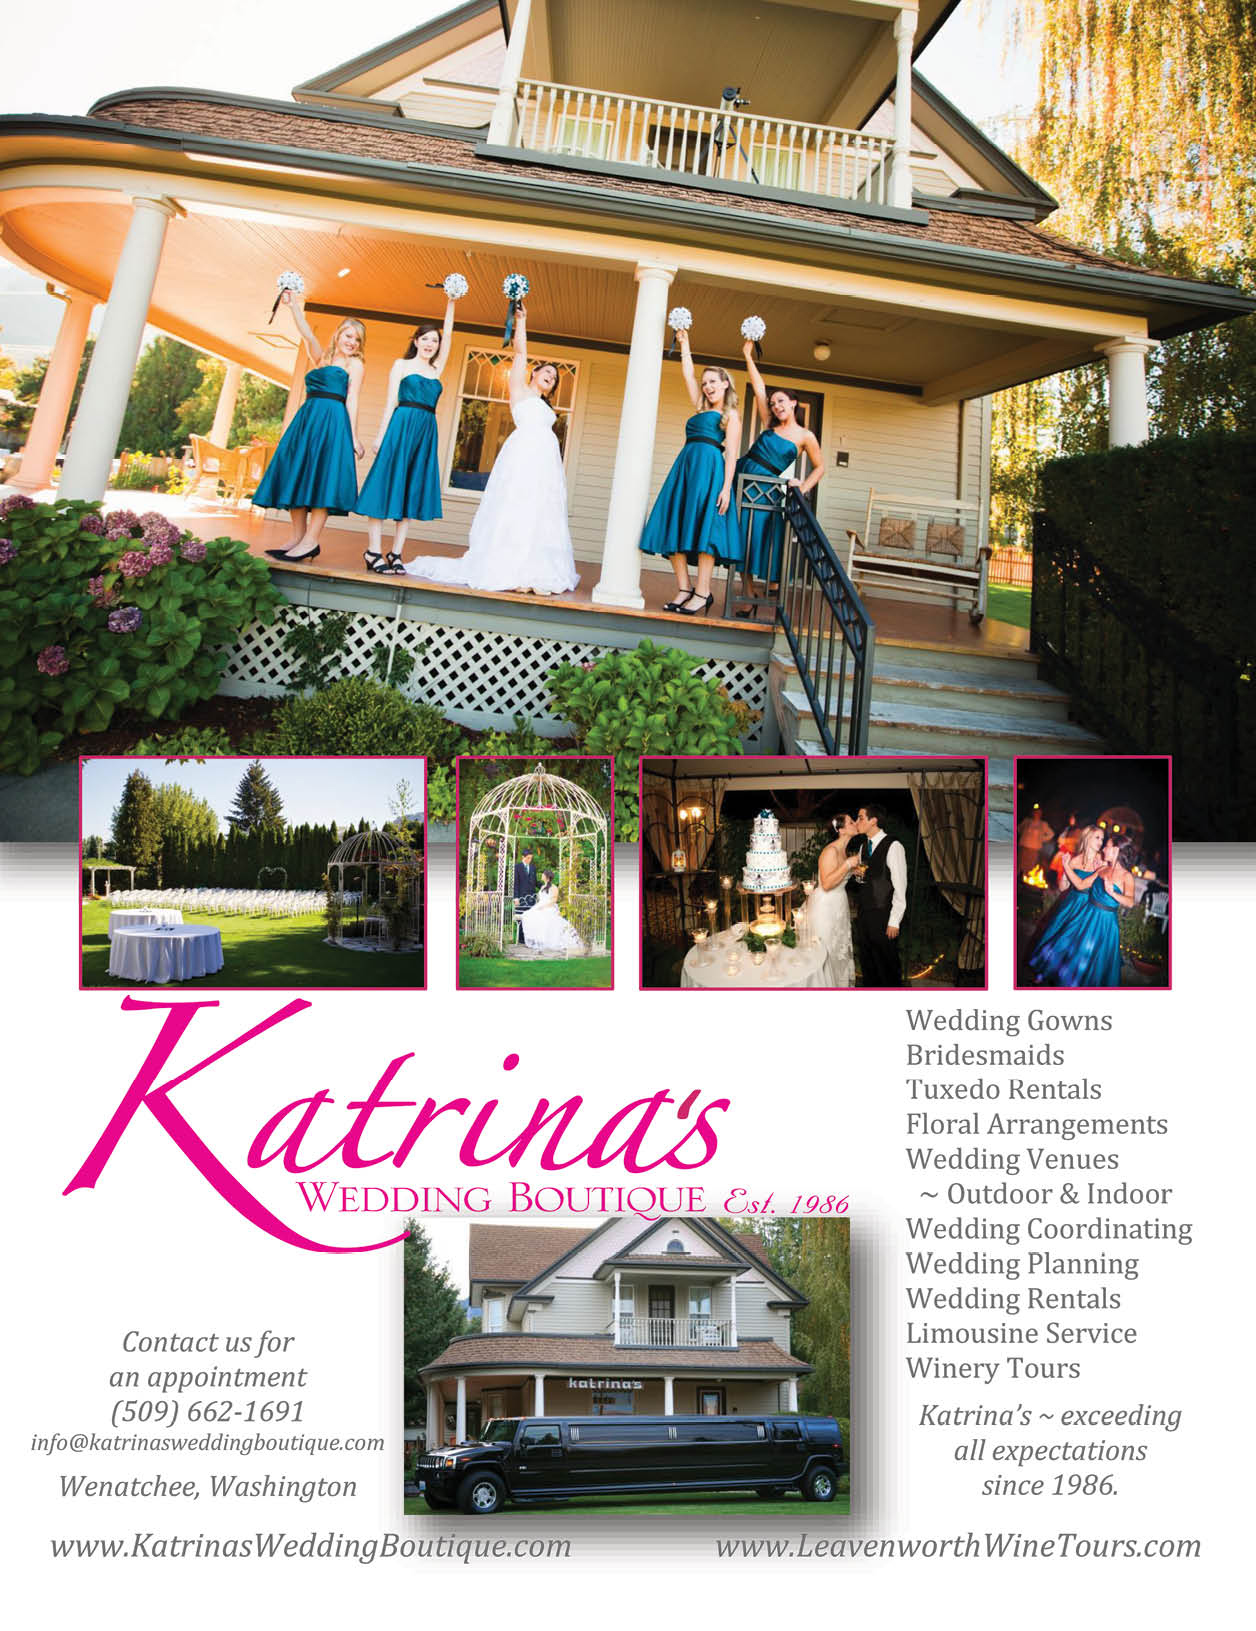 2017 Katerinas Wedding Boutique WRG